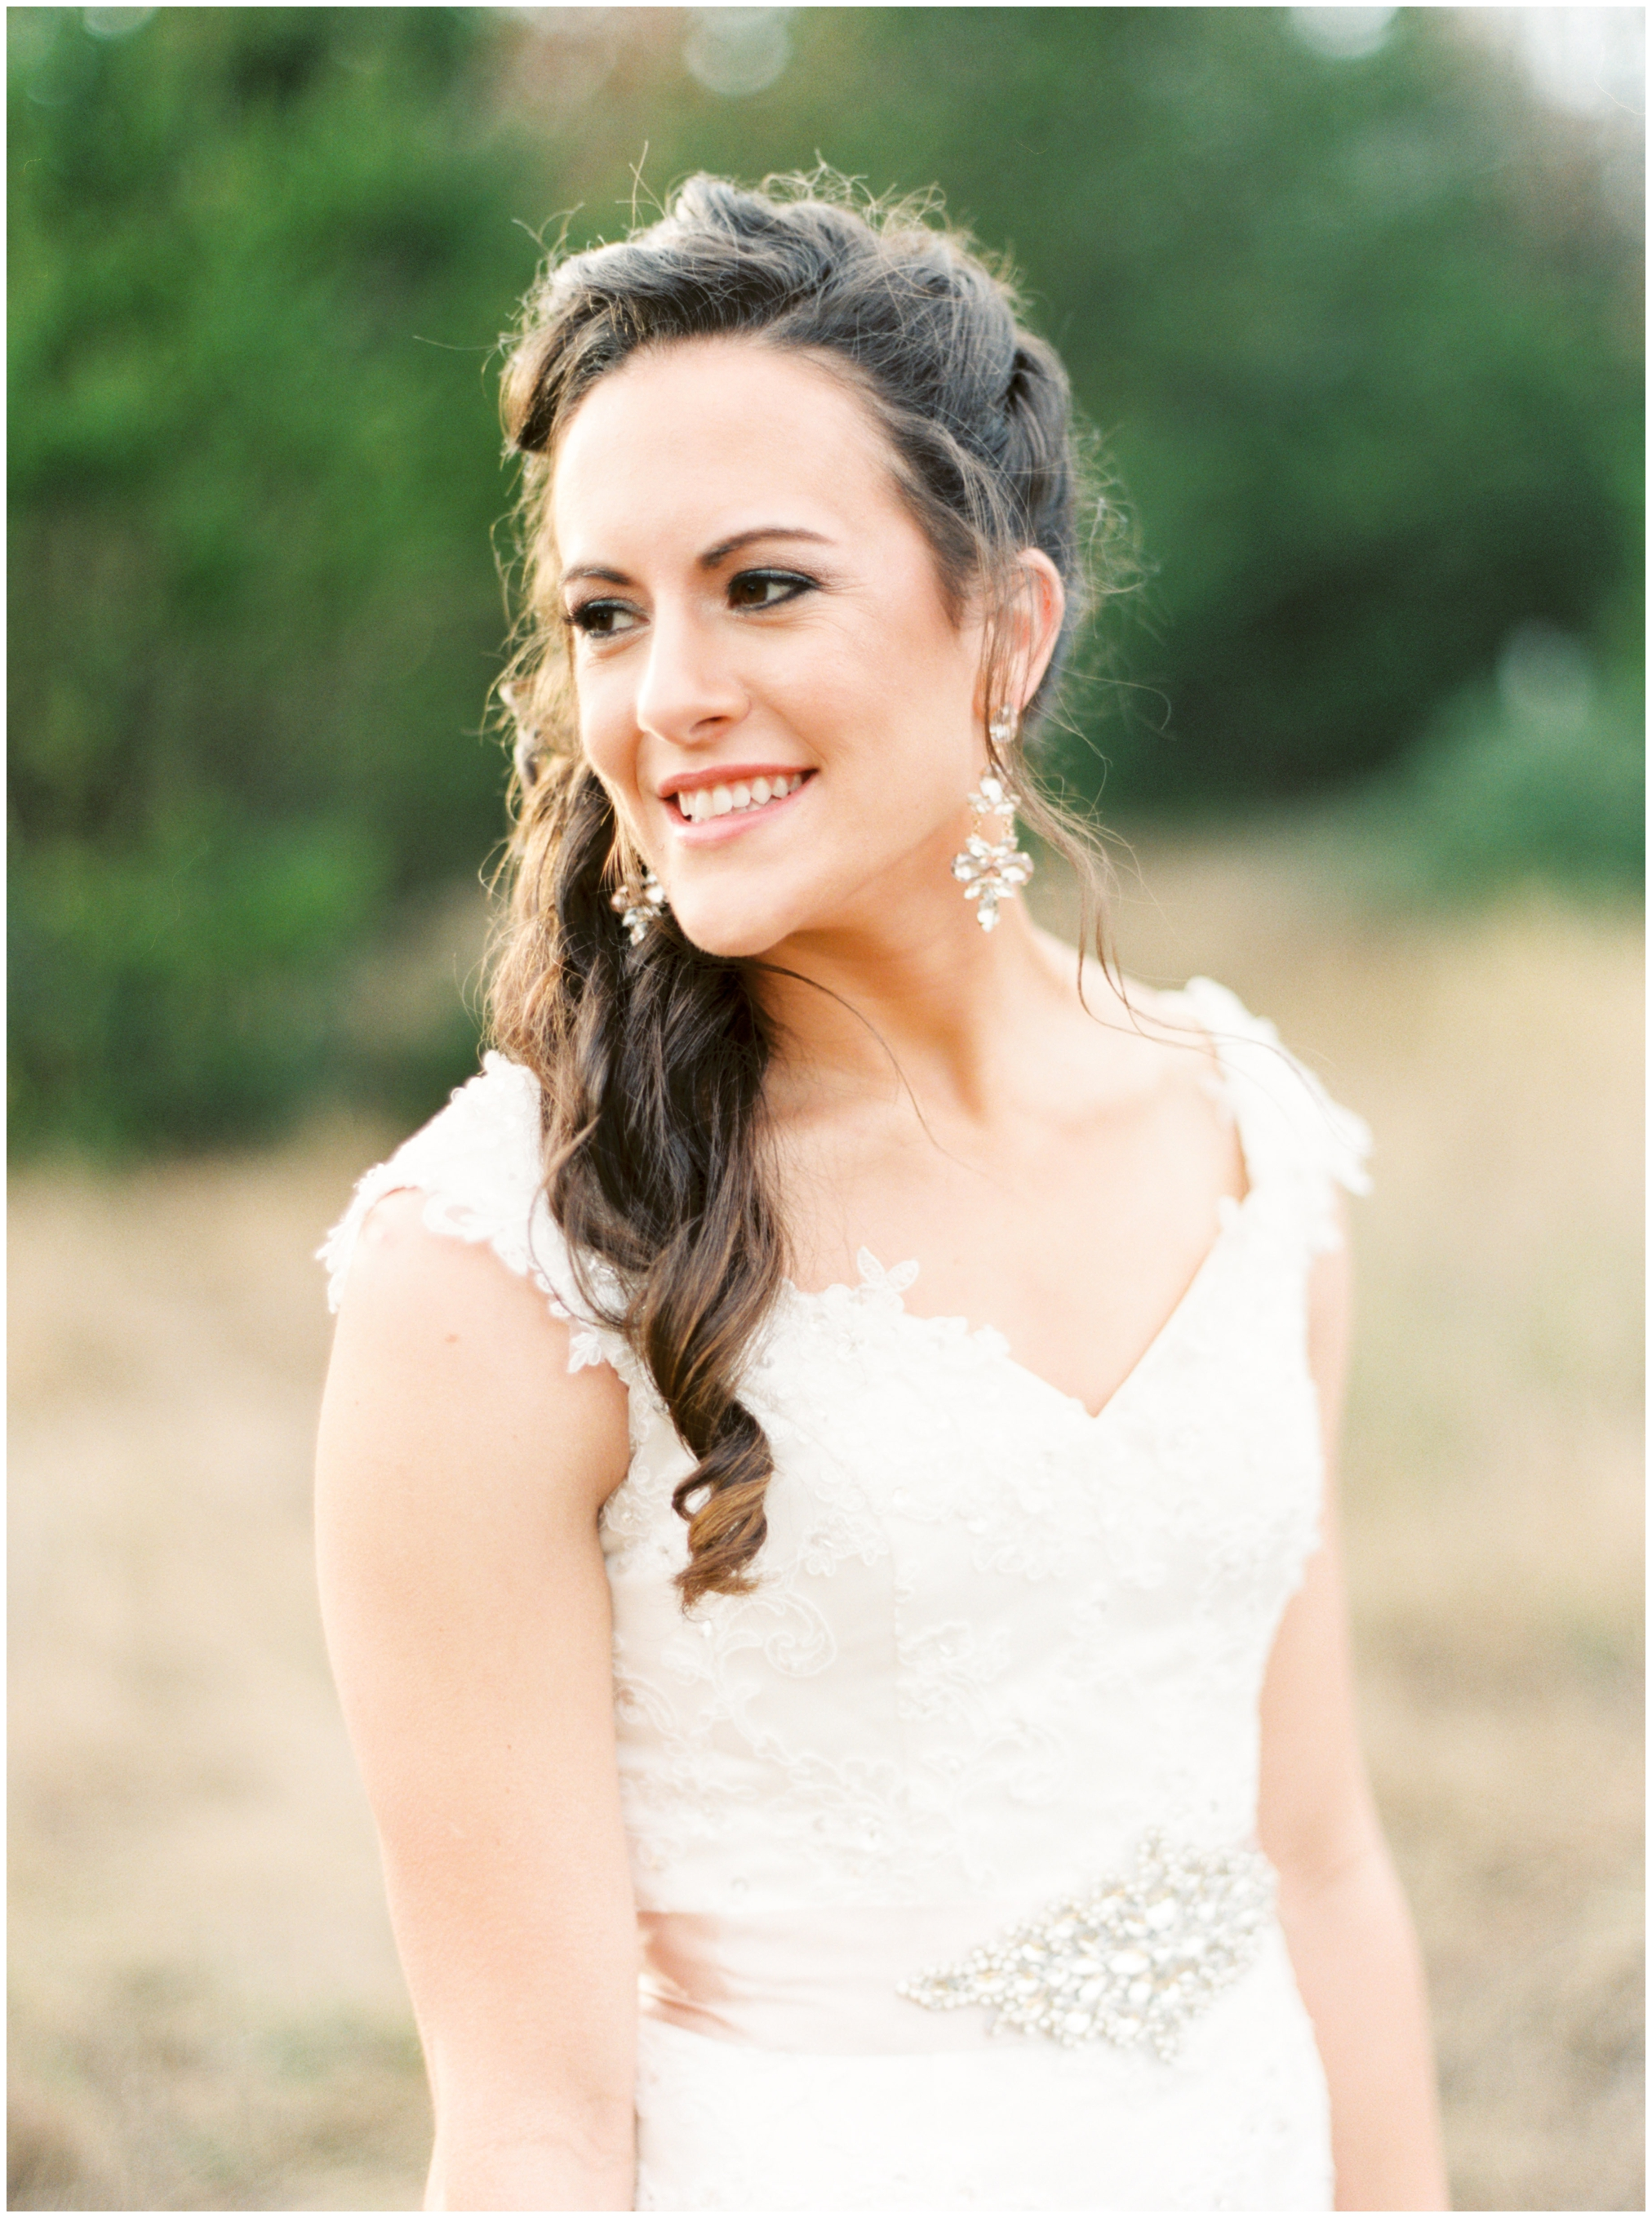 Sarah Best Photography - Emily's Bridals-135_STP.jpg